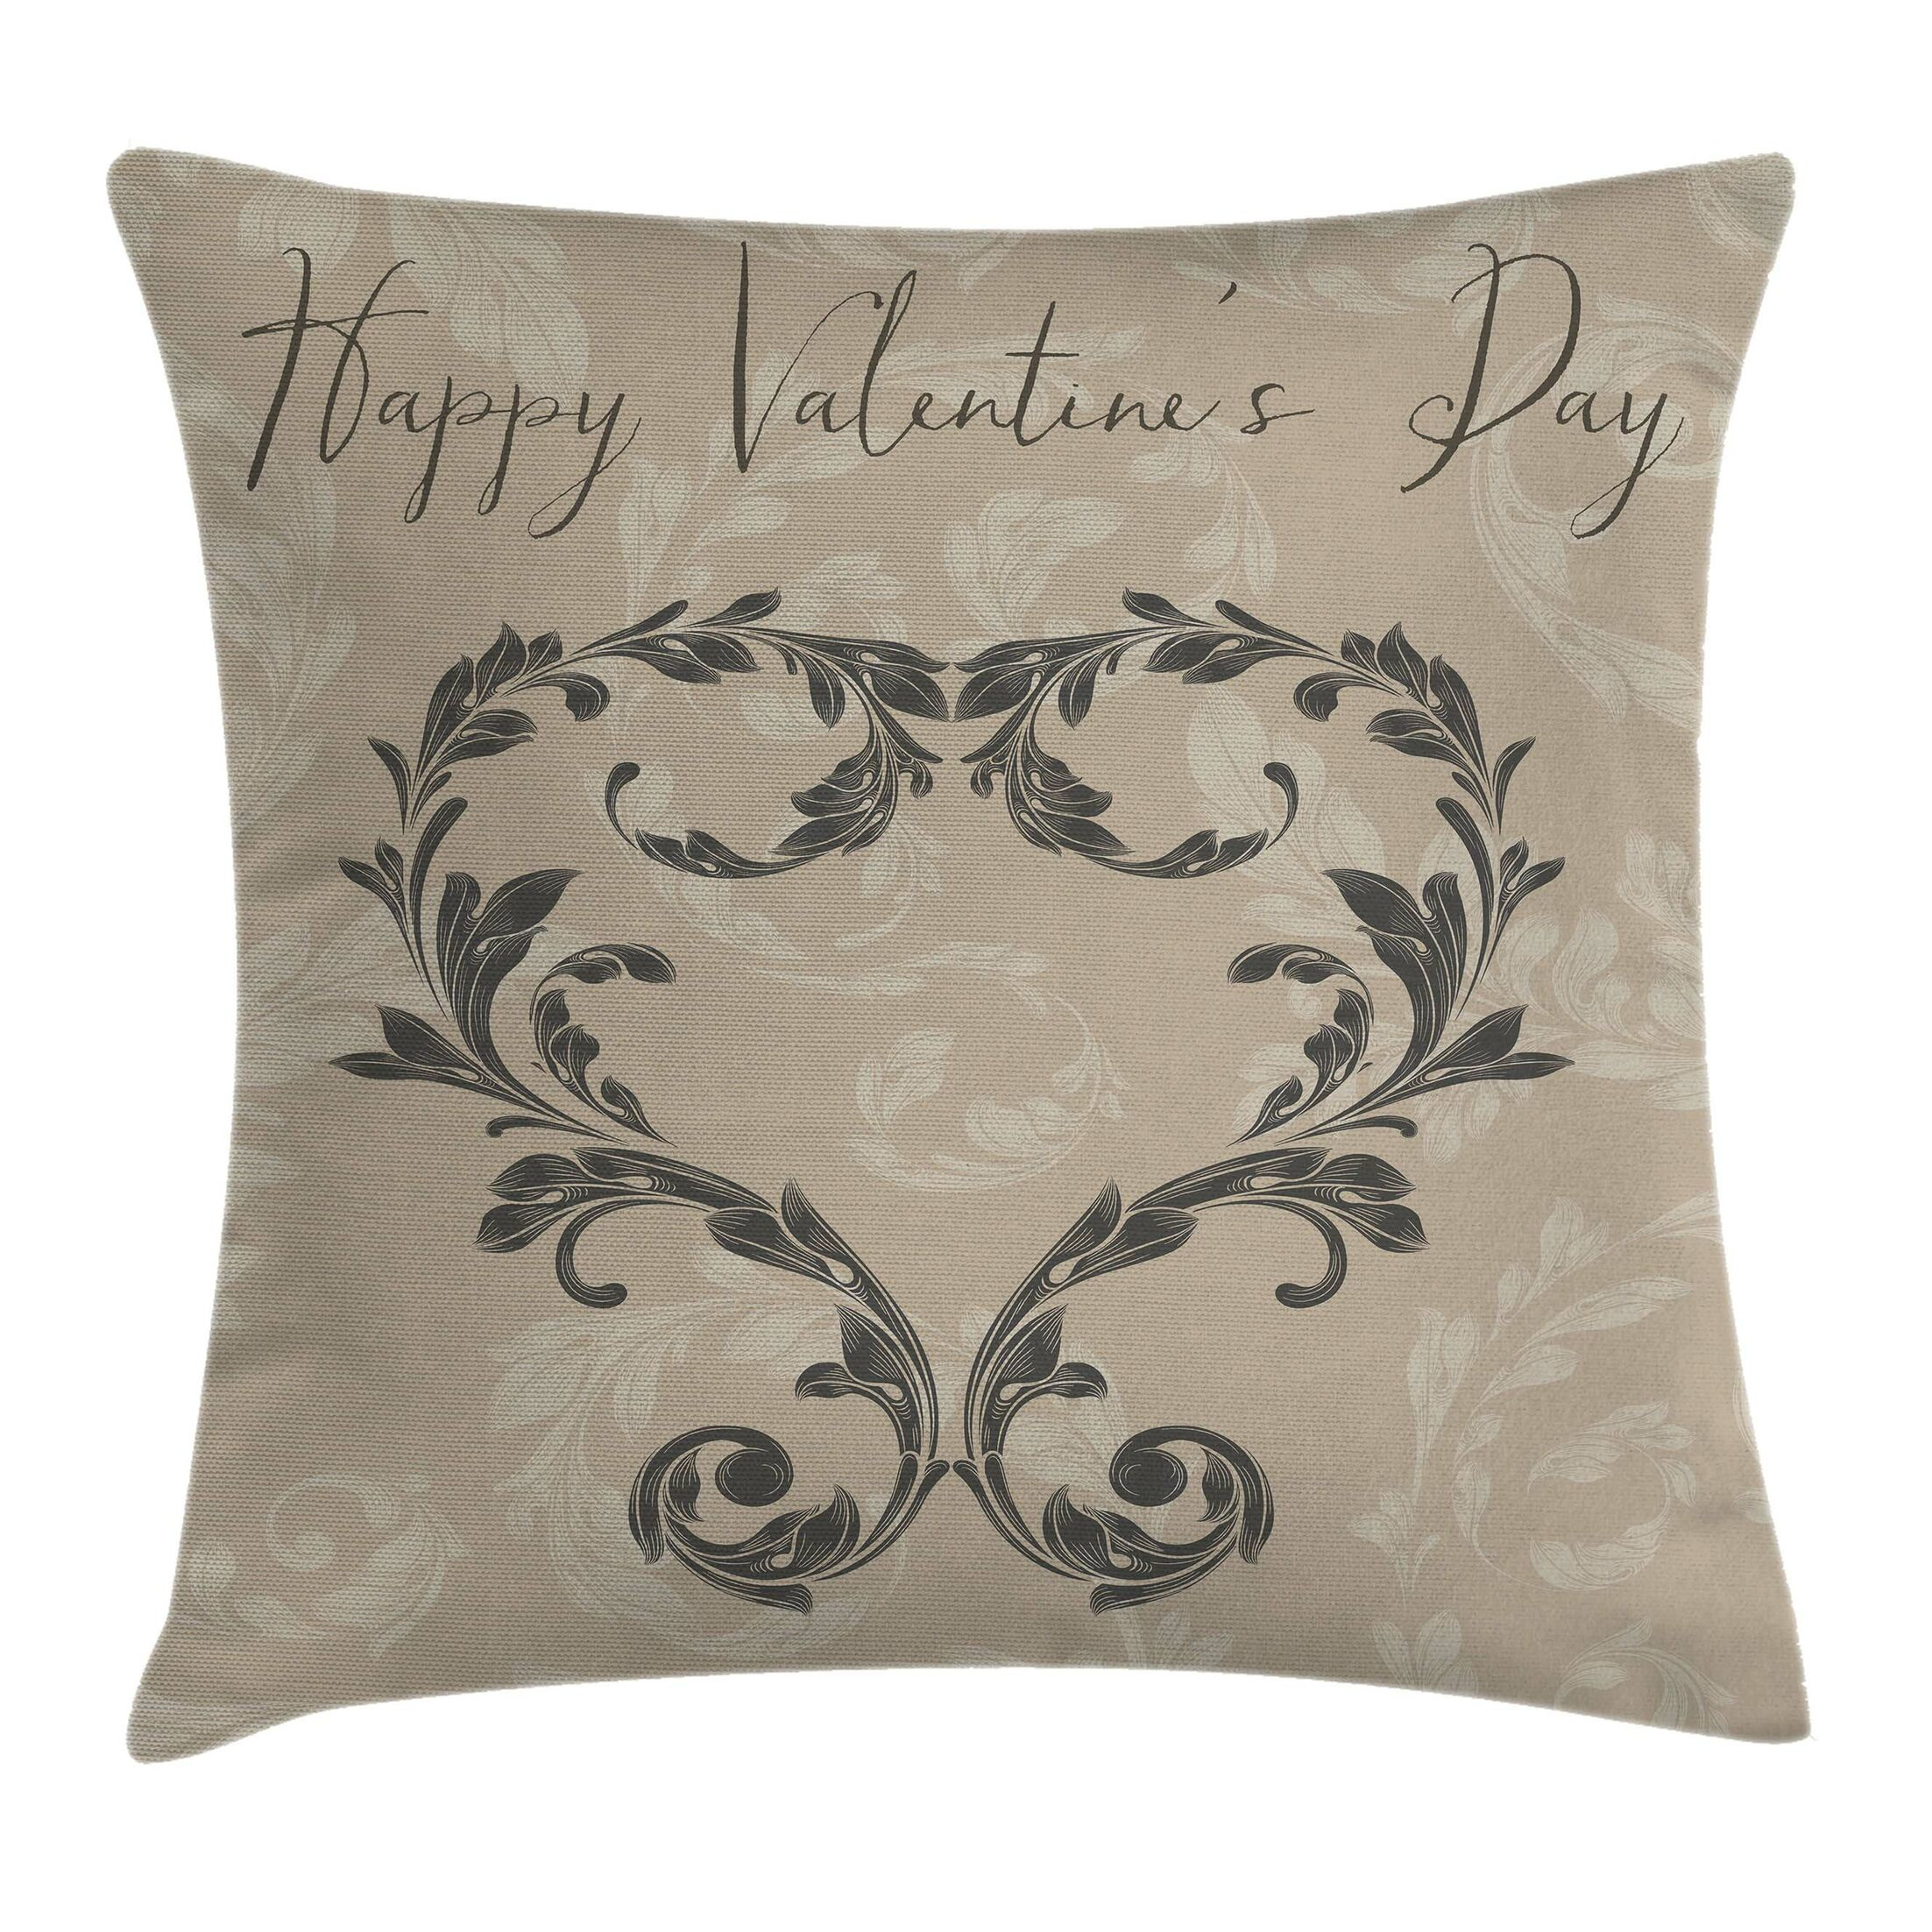 Valentine's Day Square Pillow Cover Size: 24